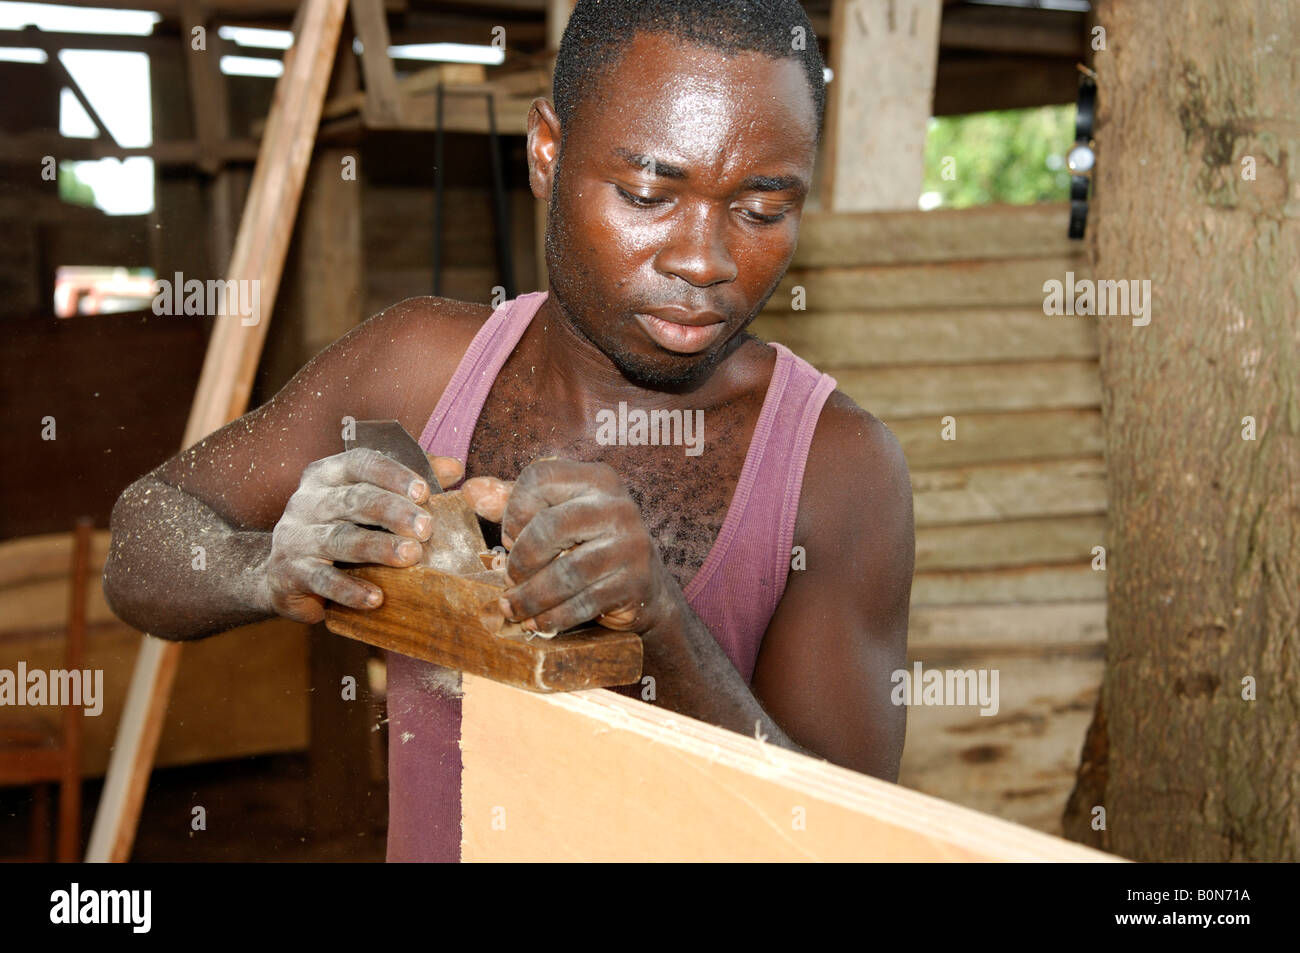 Carpenter at work in a cabinetmaking, Accra, Ghana - Stock Image